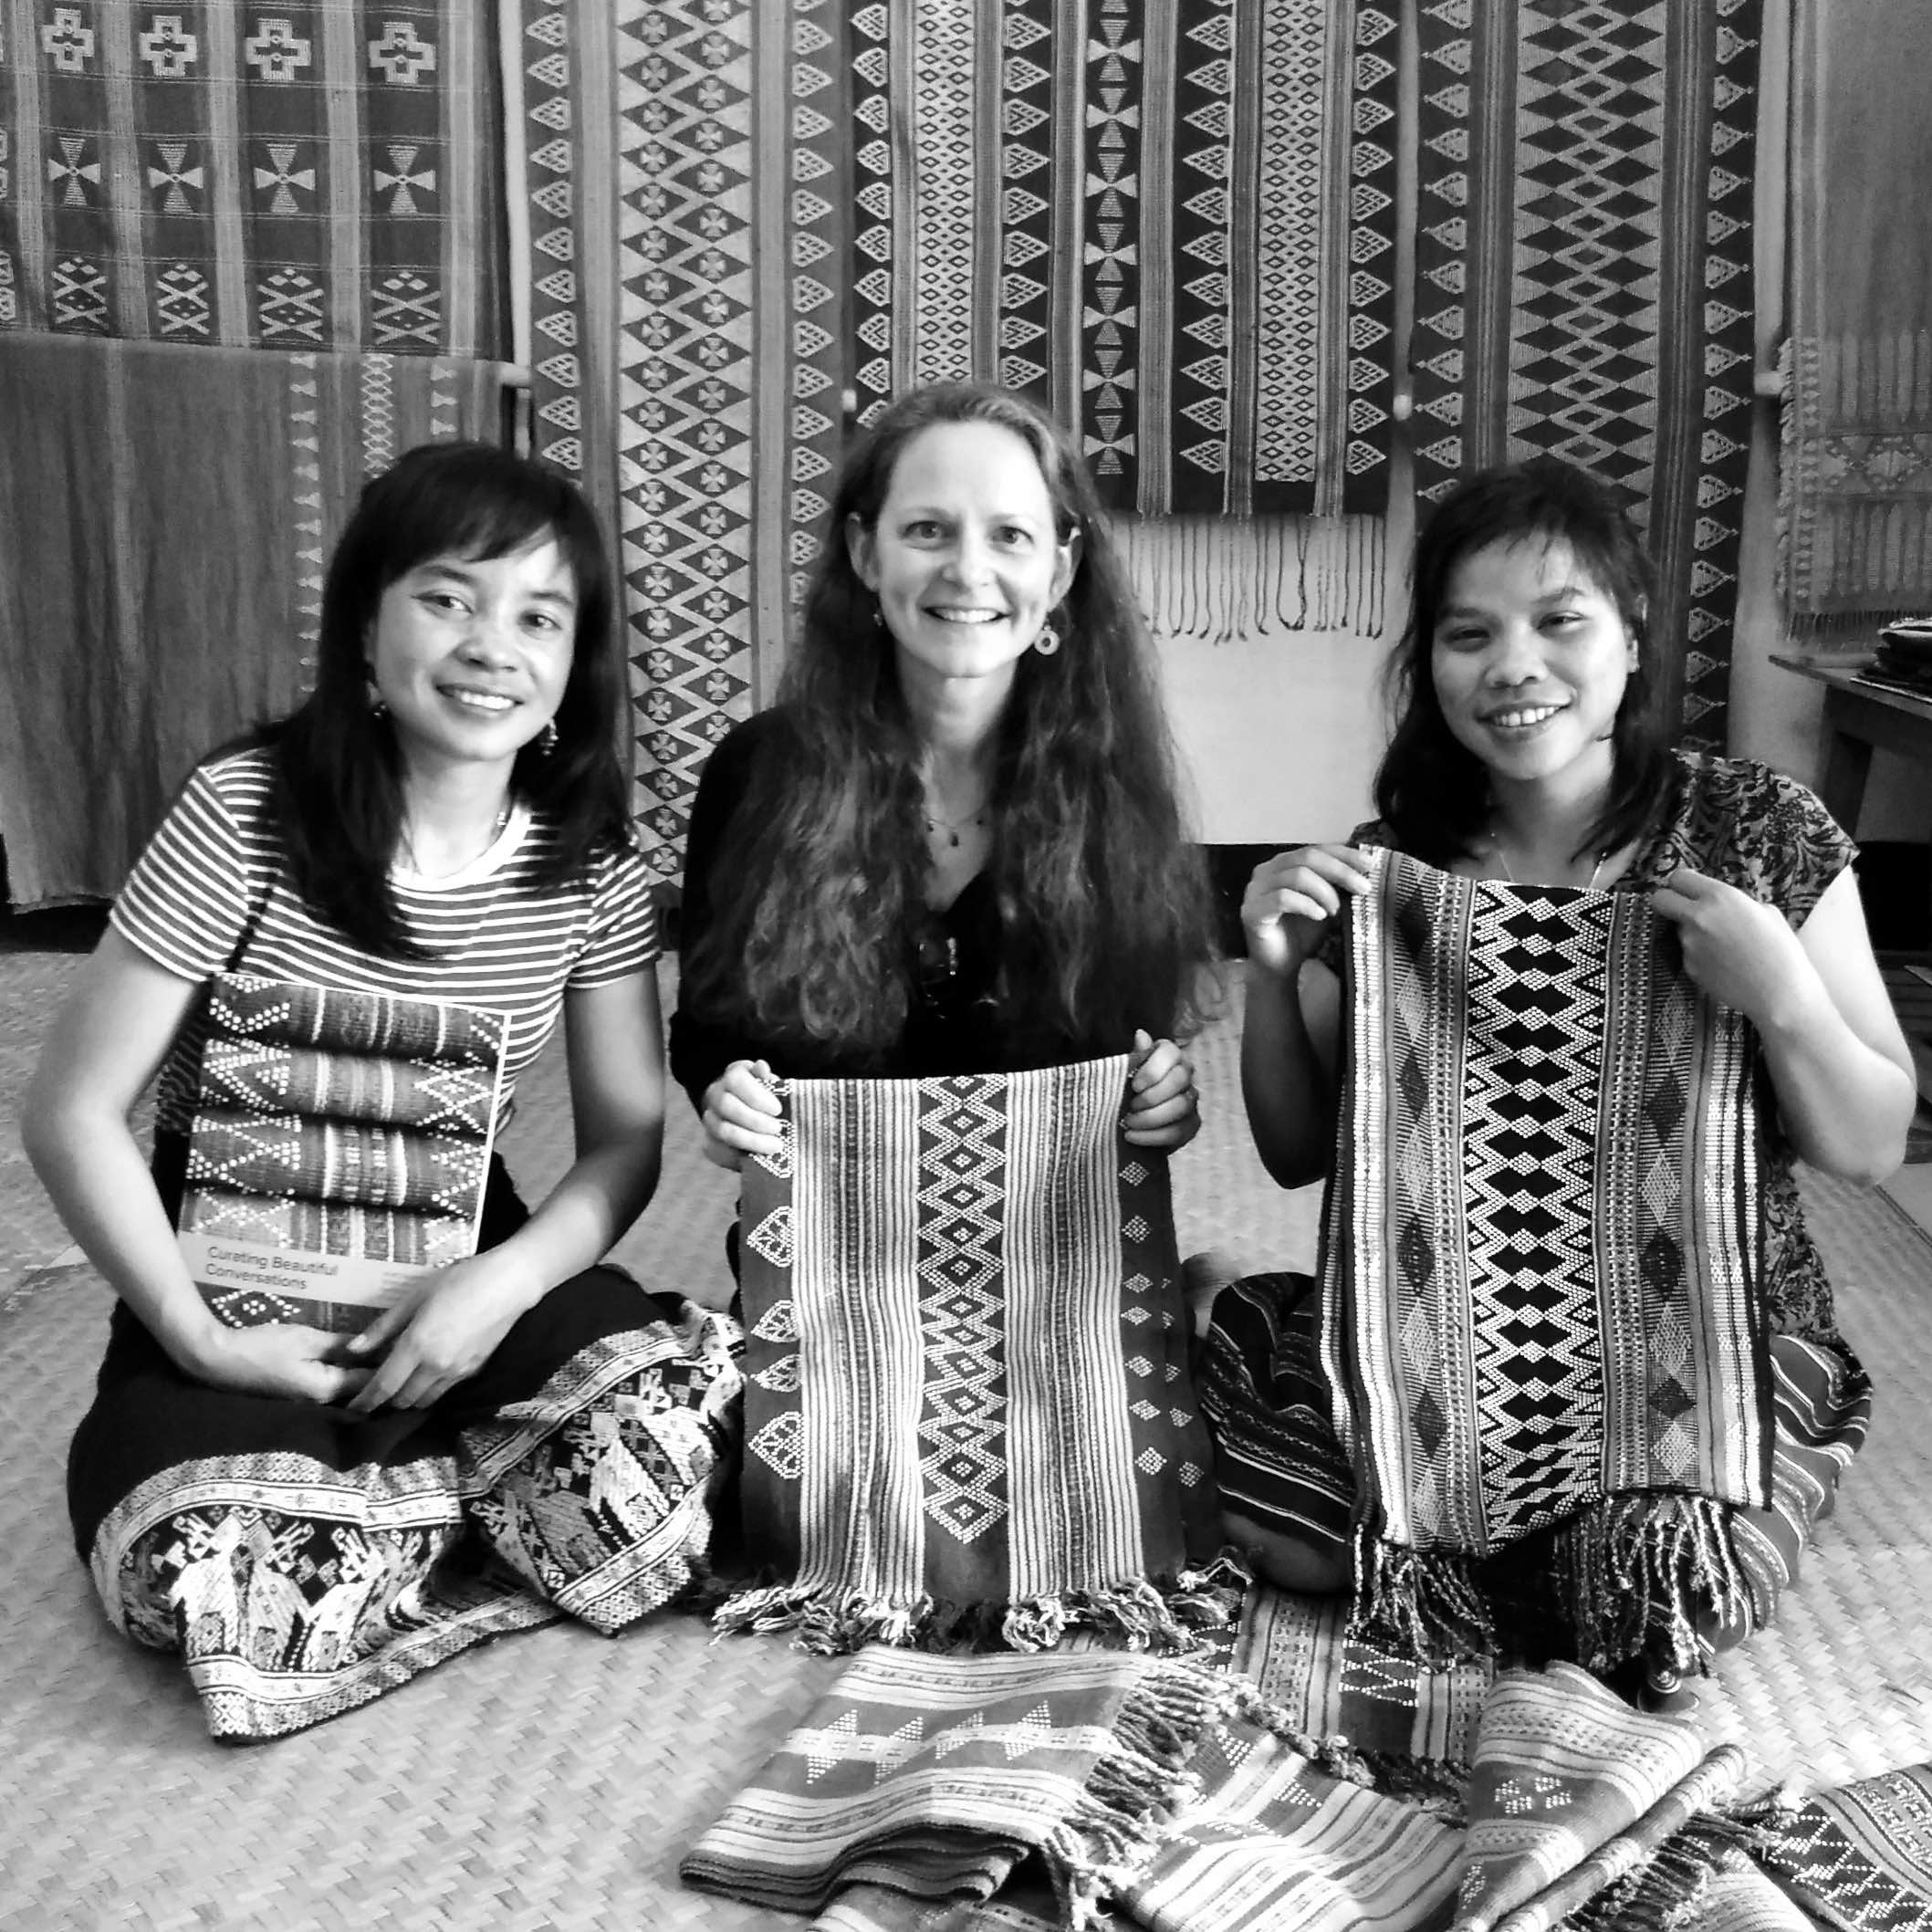 Introducing Keo (she also goes by Doi) and Mone! They and their other four sisters are all master Katu weavers, blending innovative adaptions to traditional designs. I asked about the different bead weaving motifs, and they told me what each one meant in their Katu culture - from protection, friendship, a person, lizard legs, star, a mother's love for her daughter, and more.